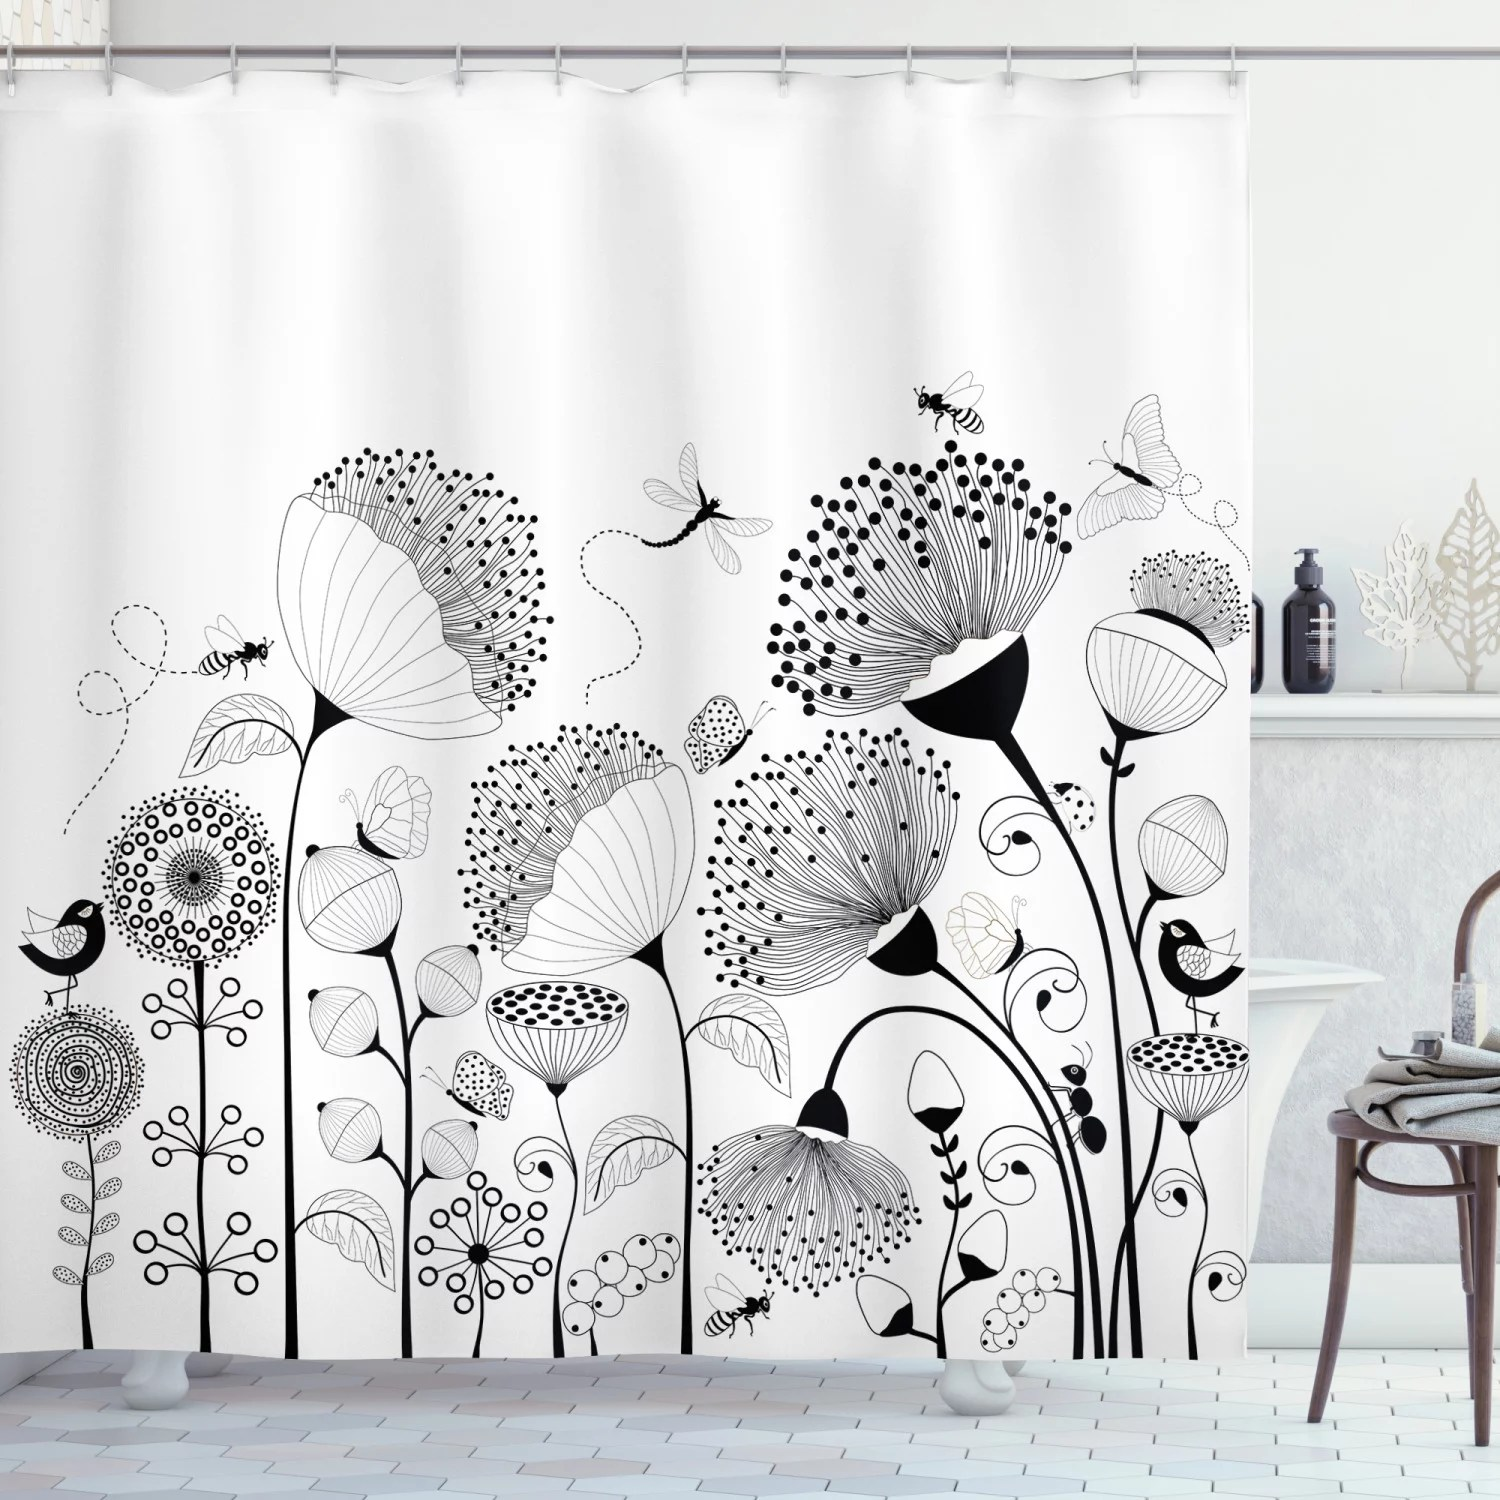 black and white shower curtain small large blooming flowers with butterflies and bees creatures nature fabric bathroom set with hooks black white